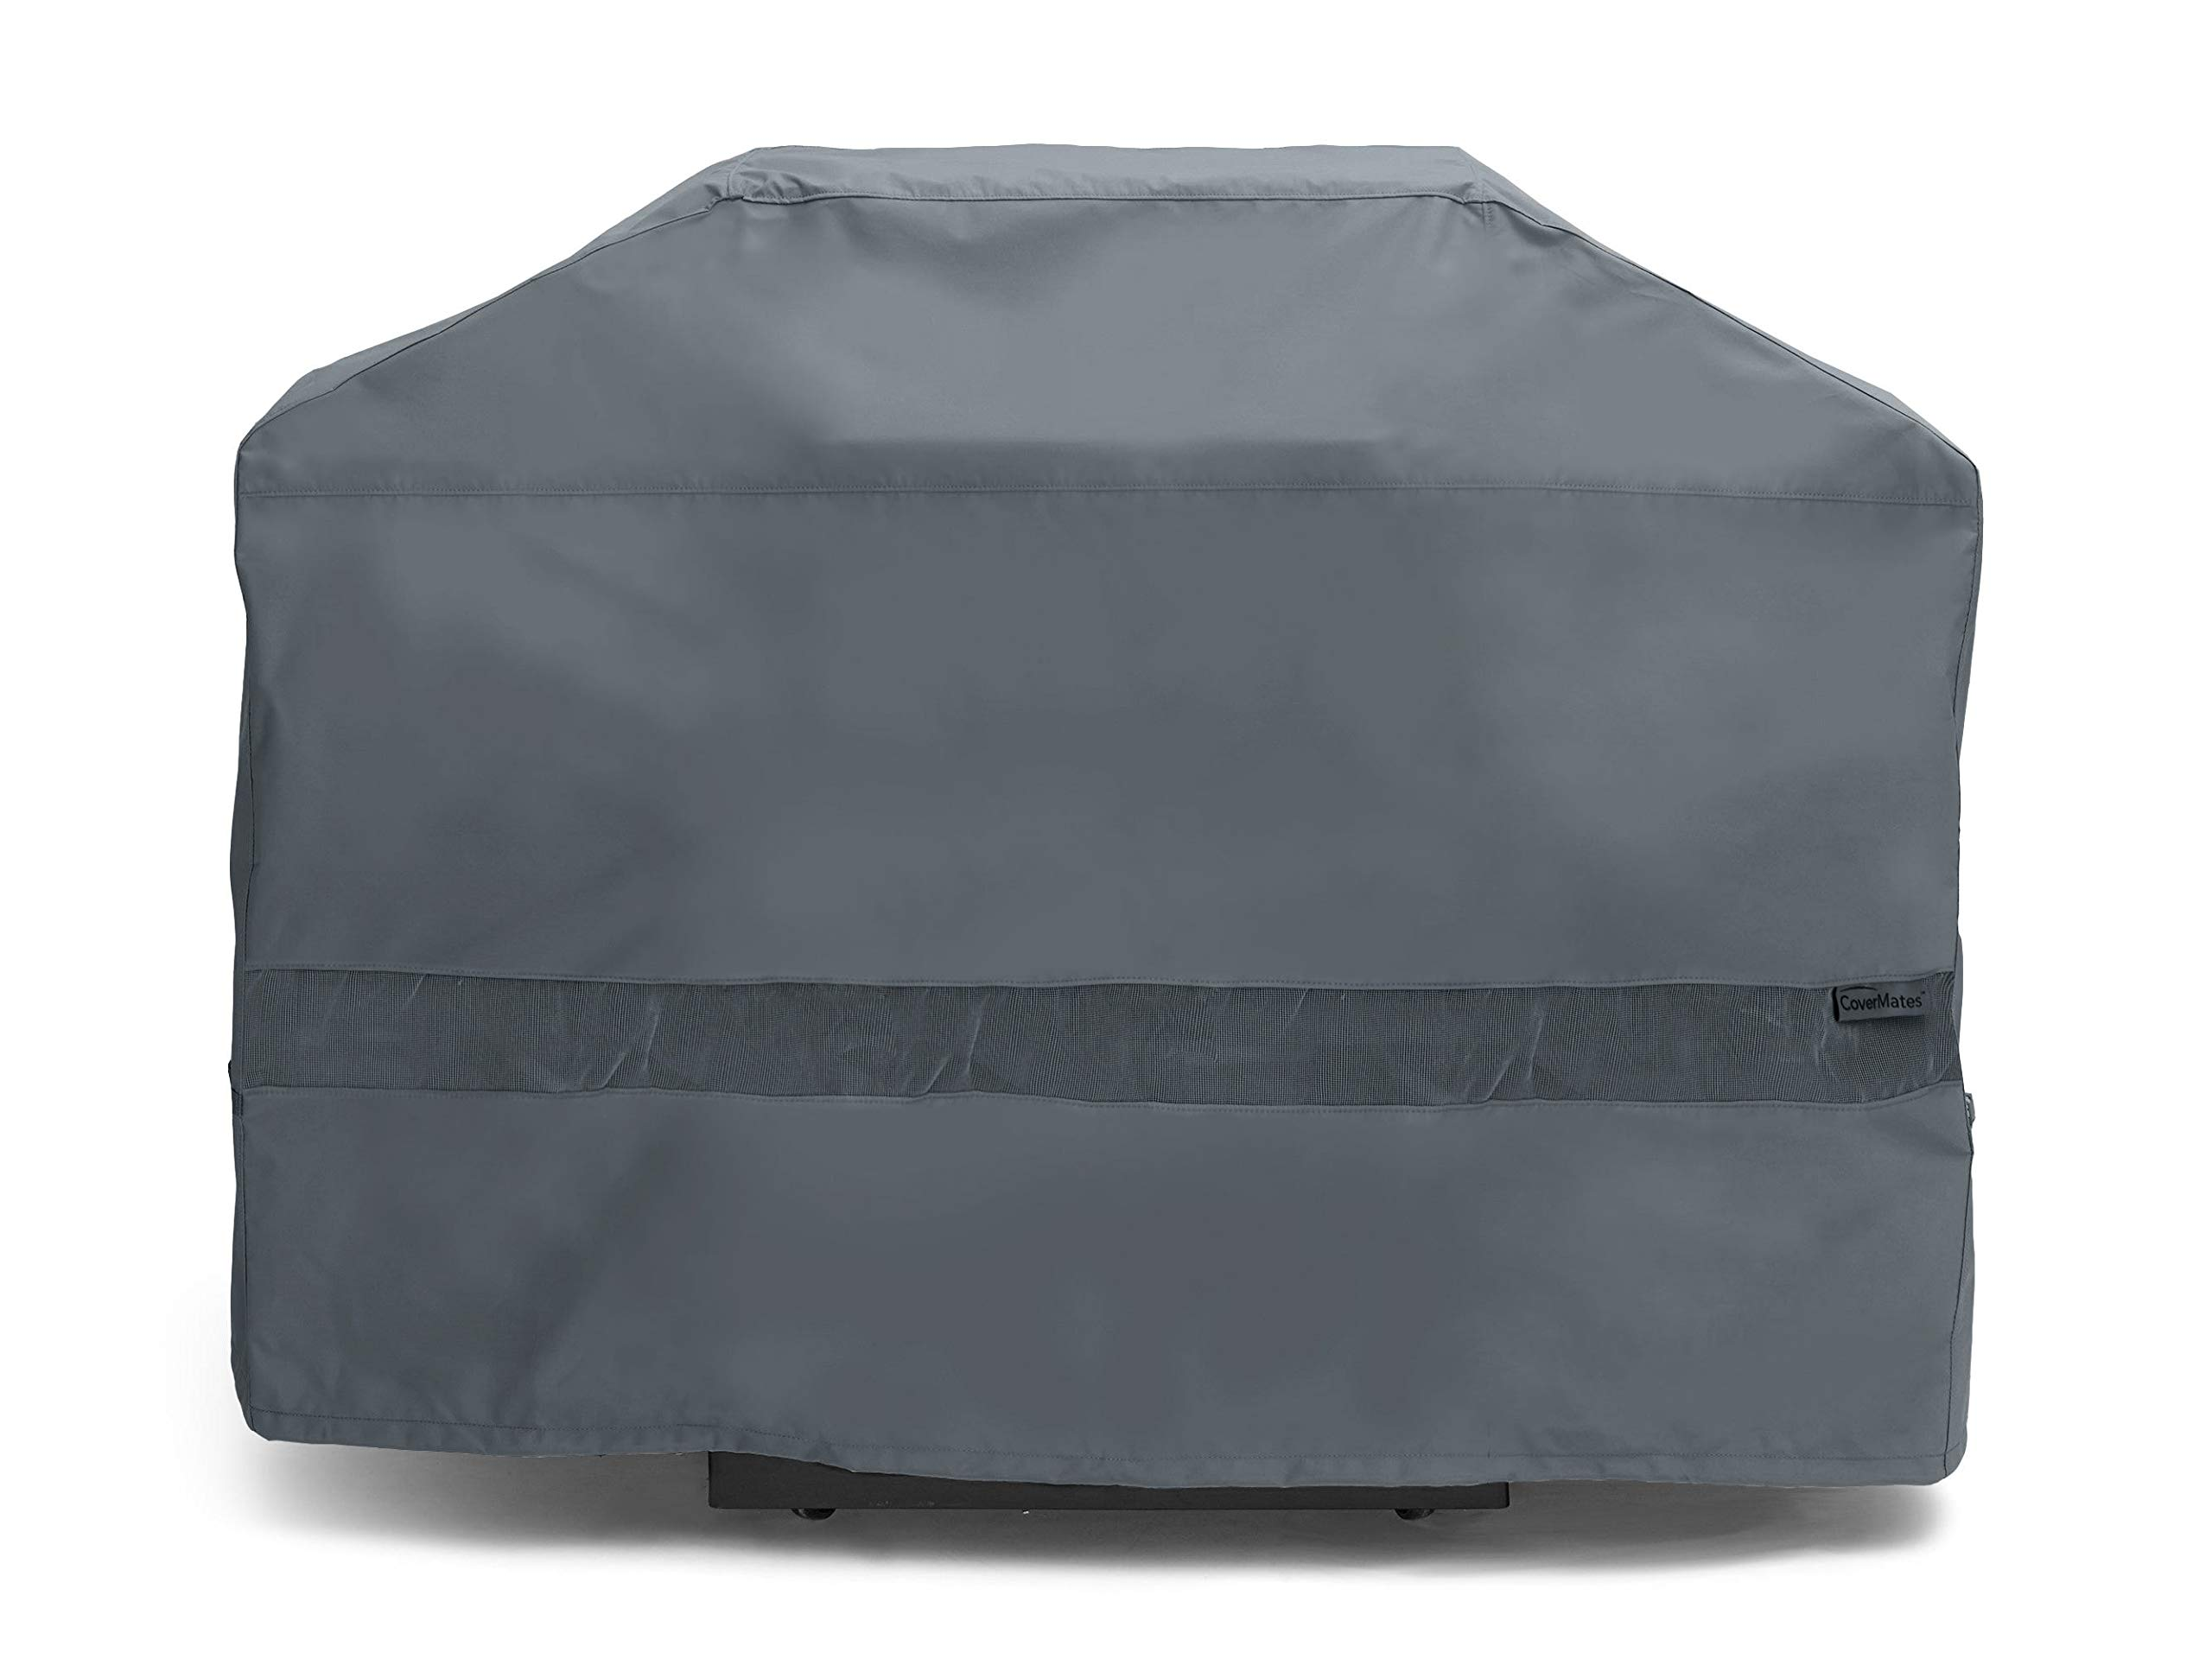 Covermates – Grill Cover – 66W x 26D x 45H – Elite – Open Mesh Vent for Breathability – Adjustable Drawcord to Cinch Cover – 3 YR Warranty – Weather Resistant - Charcoal